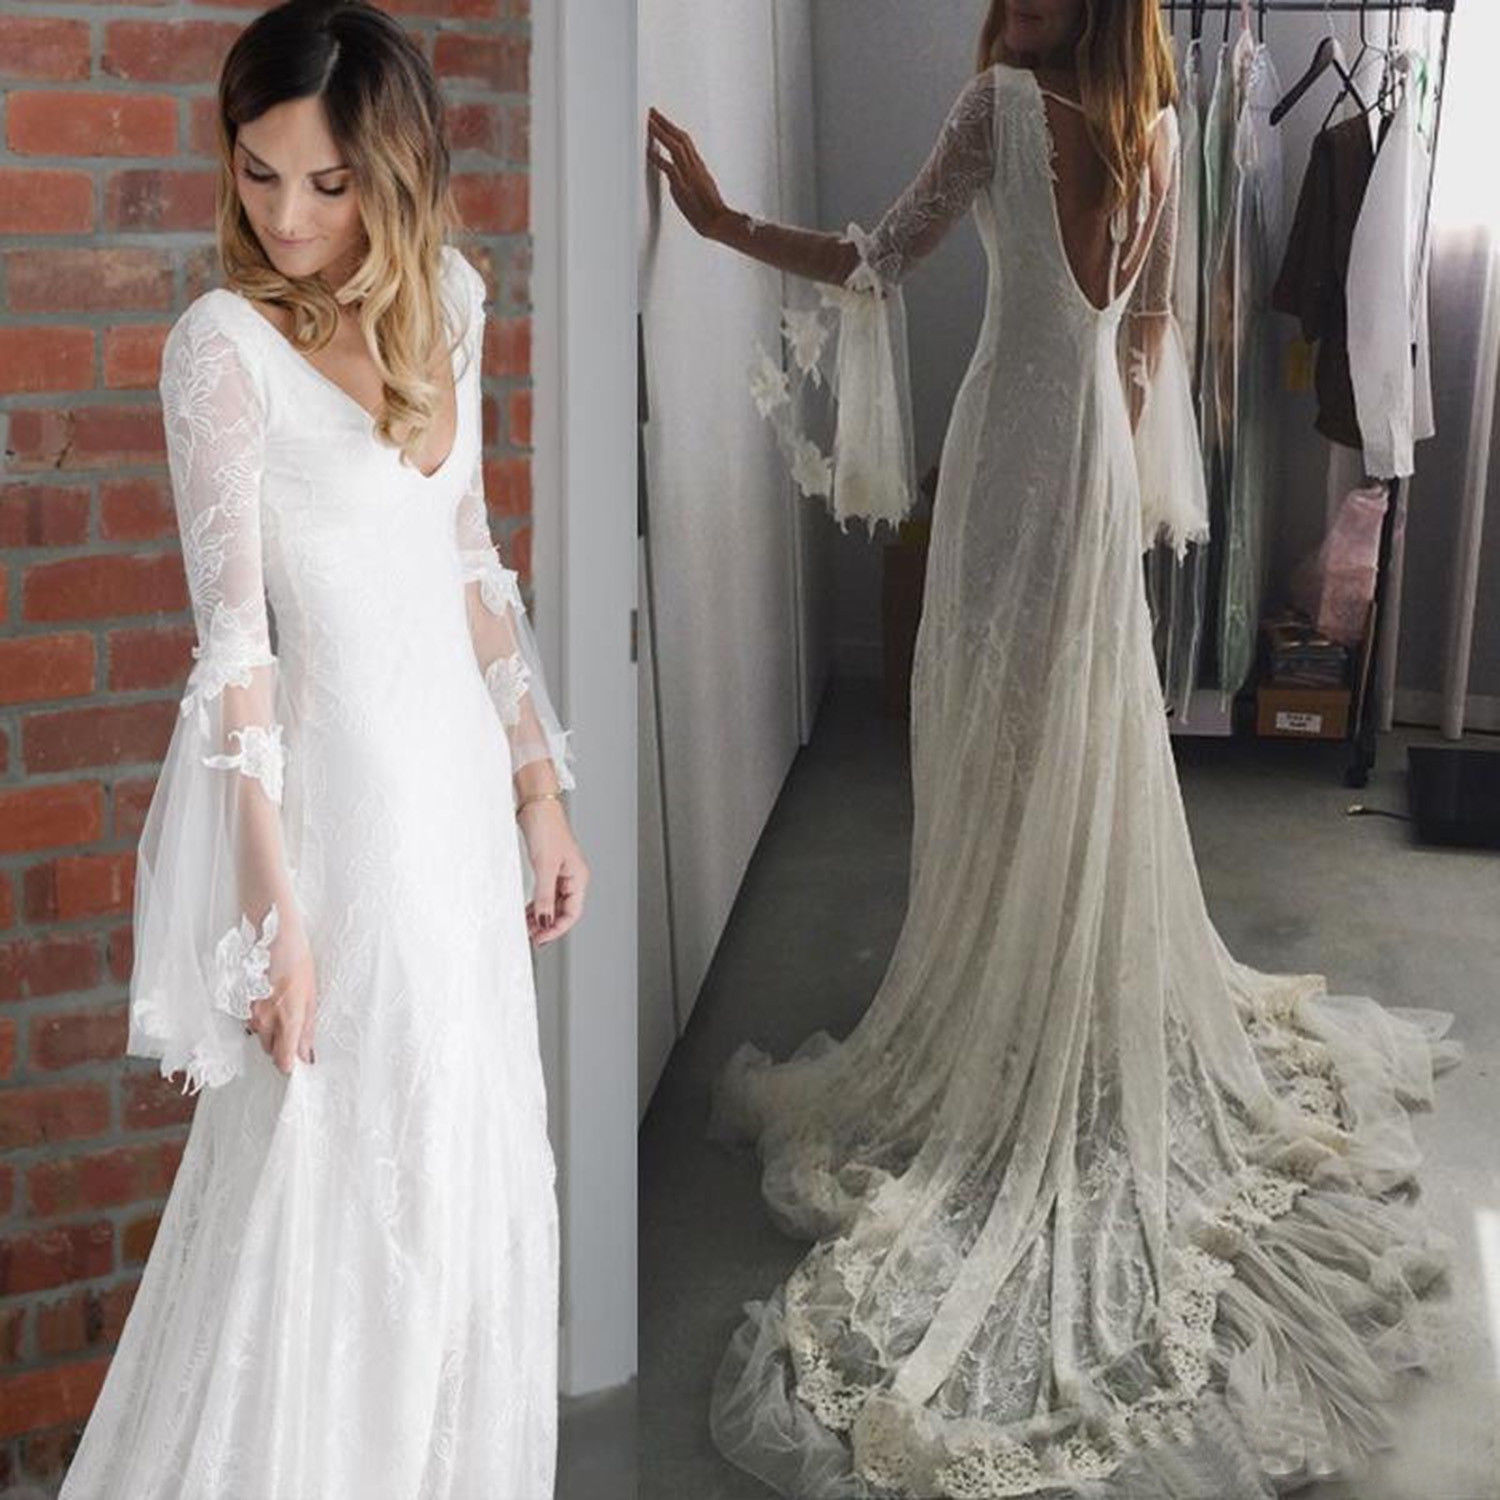 Great 2018 Medieval Wedding Gown Renaissance Bell Sleeve: Bohemia Boho Wedding Dress Deep V Neck Country Bridal Gown